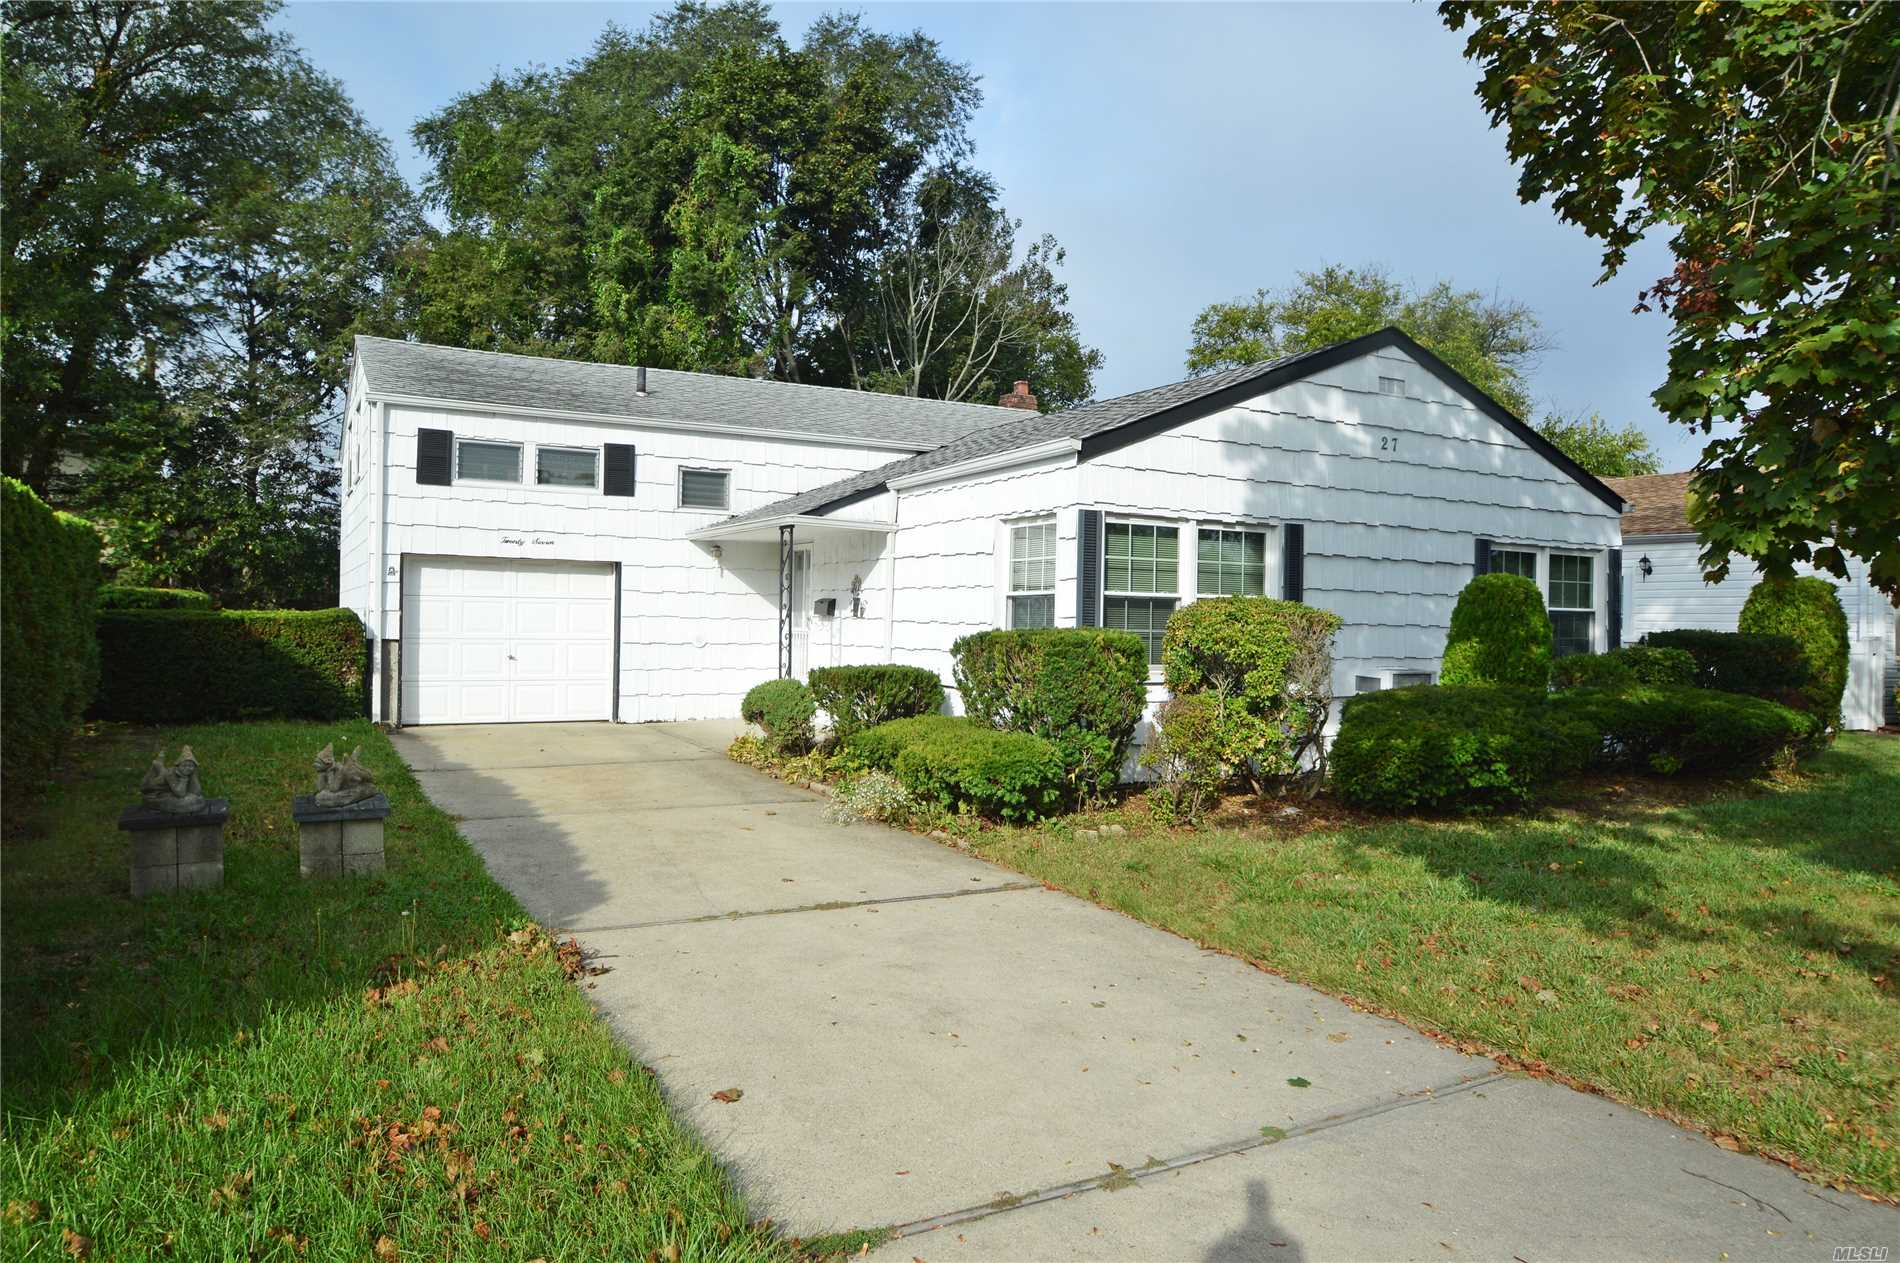 27 Jay St - Hicksville, New York